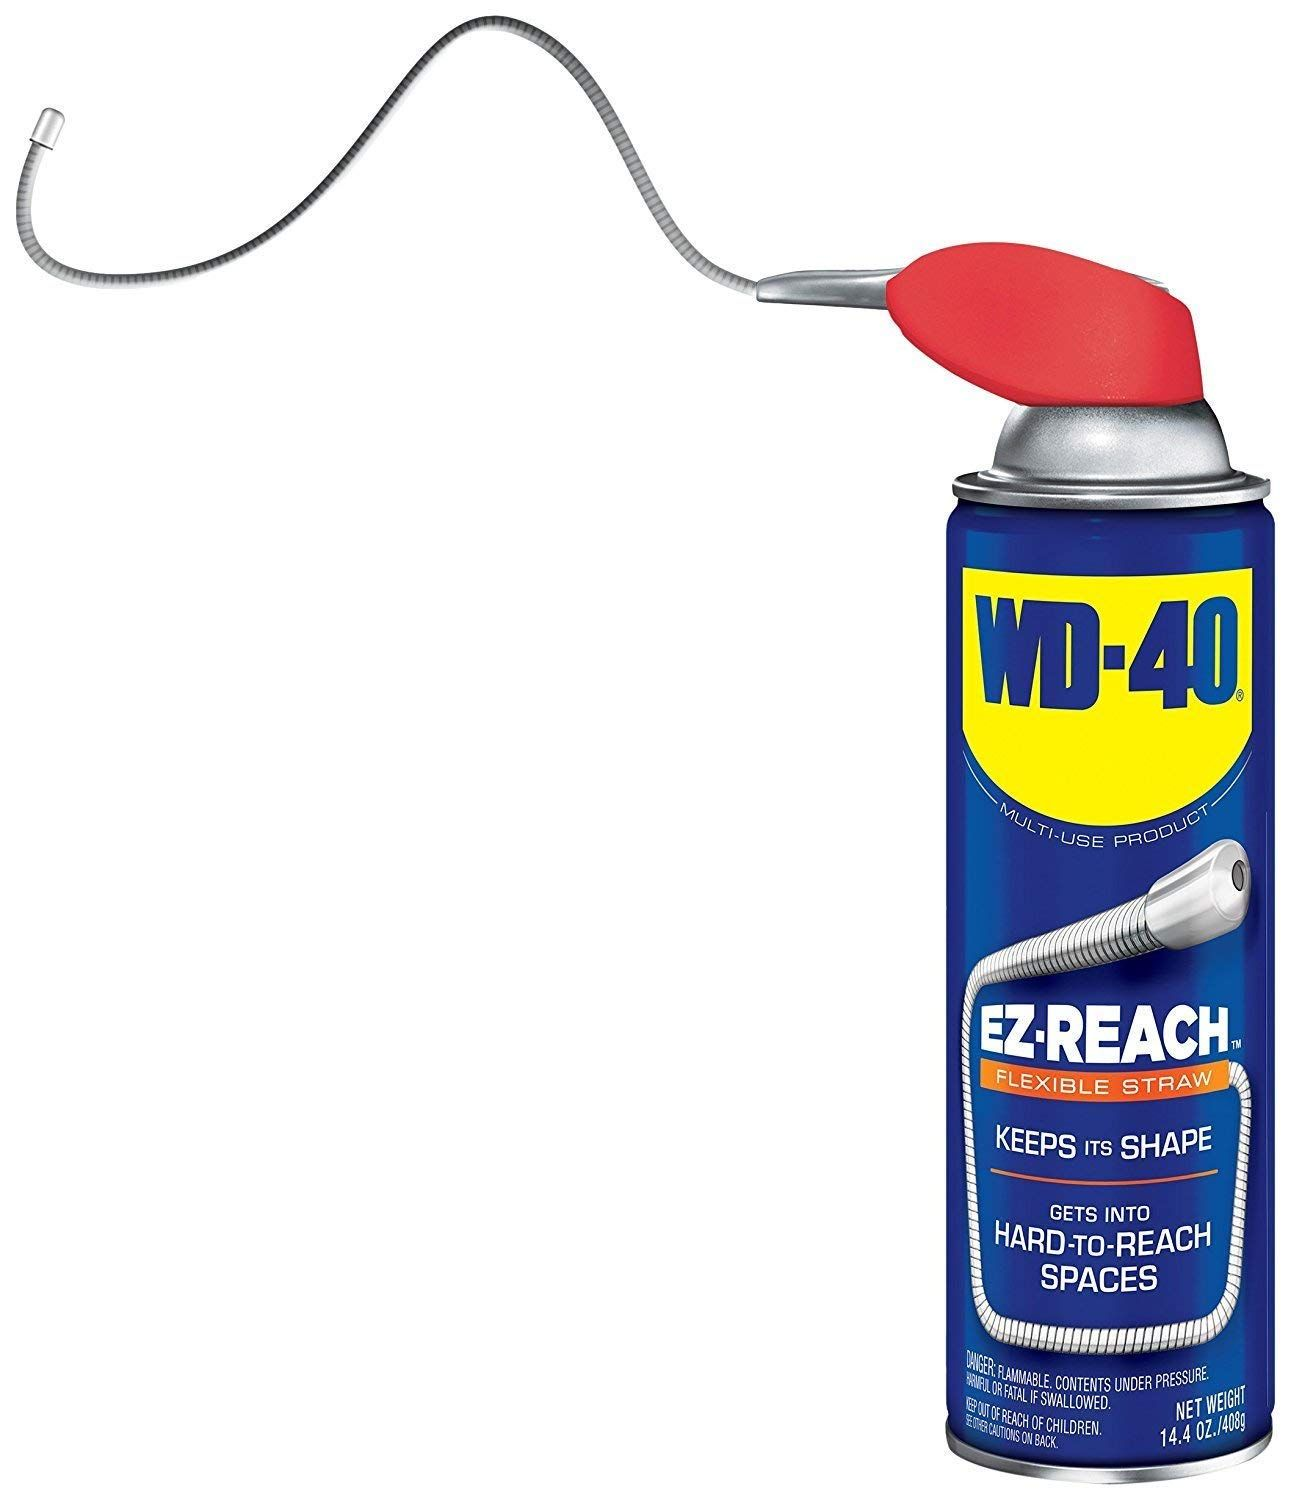 Wd 40 Multi Use Product Multi Purpose Lubricant With Ez Reach Flexible Straw 14 4 Oz Autosneed Com Industrial Scientific Wd 40 Spray Can Tools